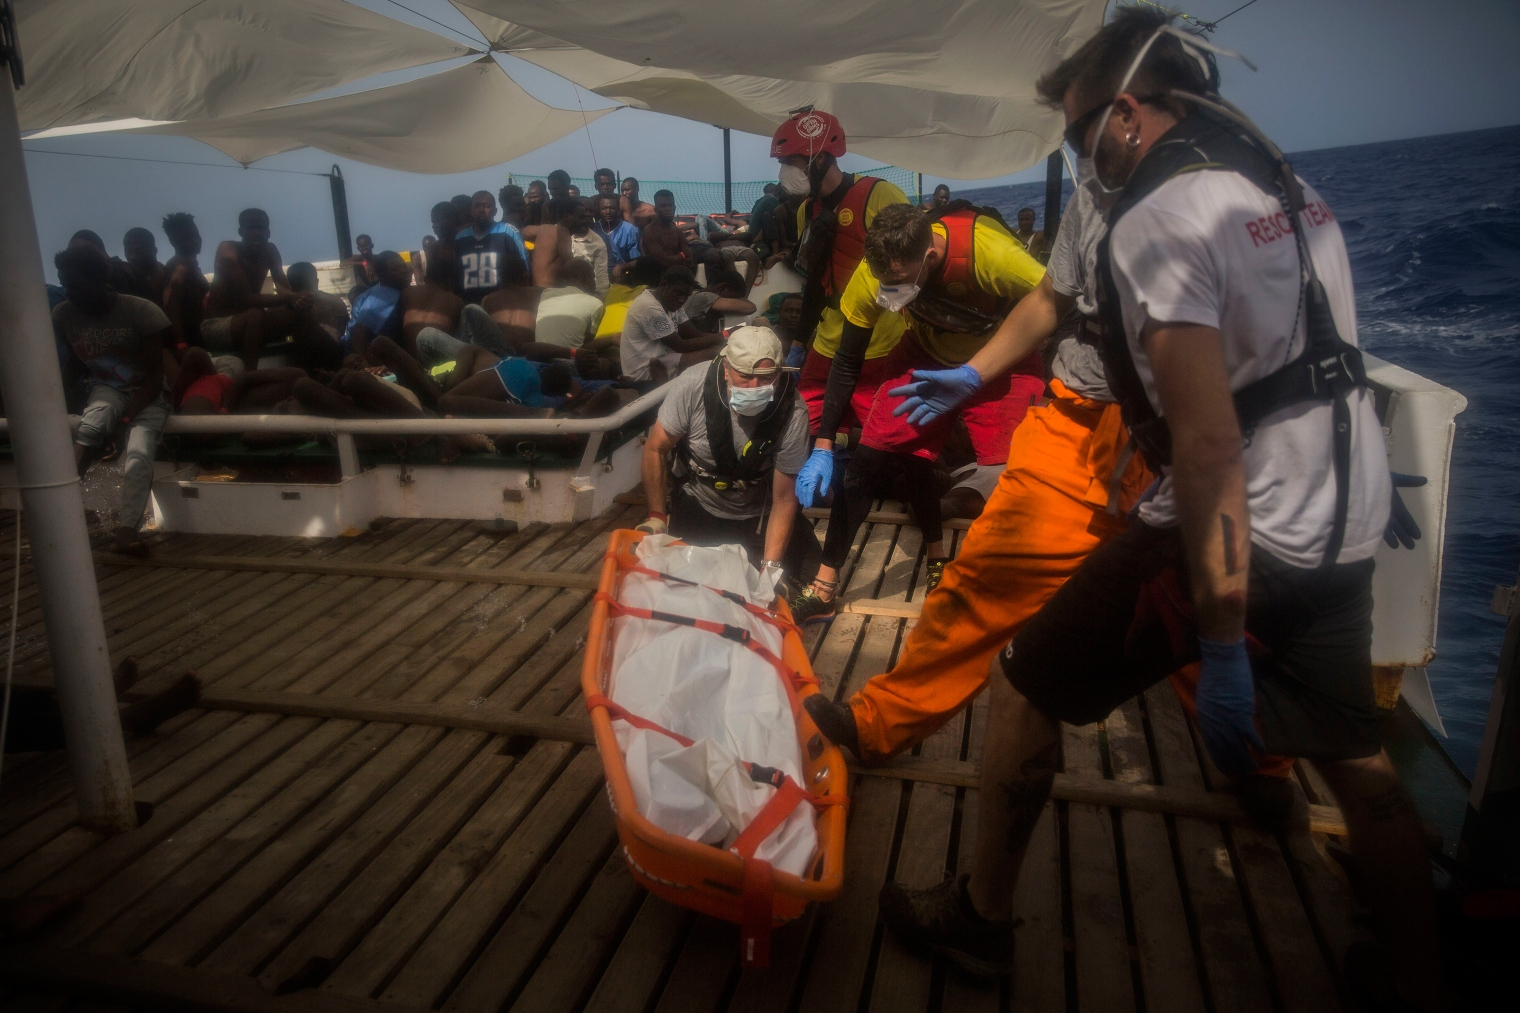 Aid workers recover dead bodies of migrants from inside het rubber boat.